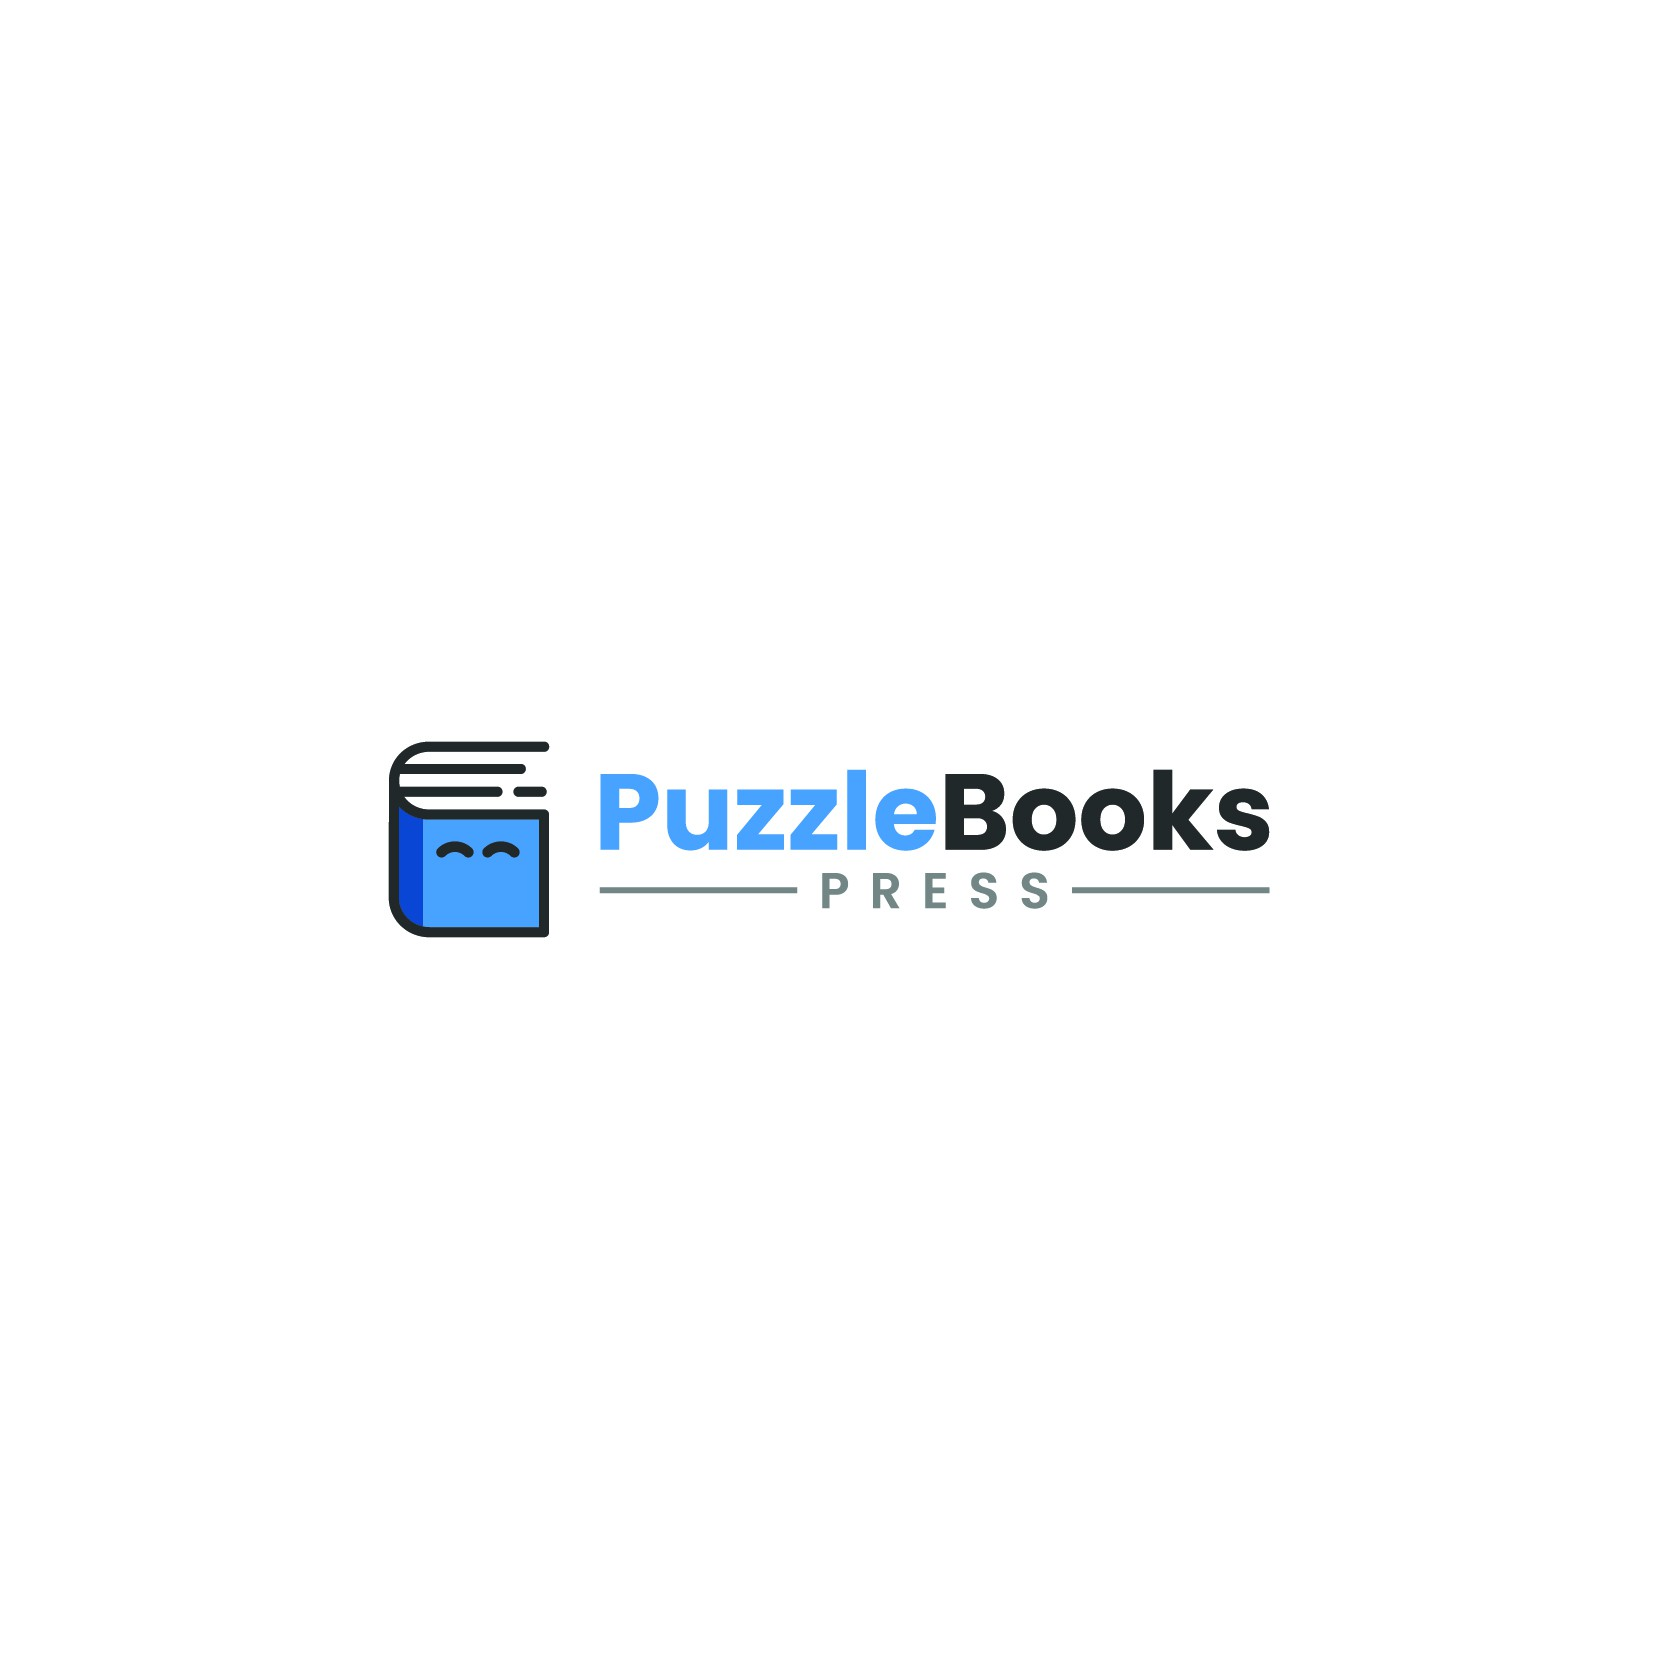 PuzzleBooks Press needs a fun, playful logo